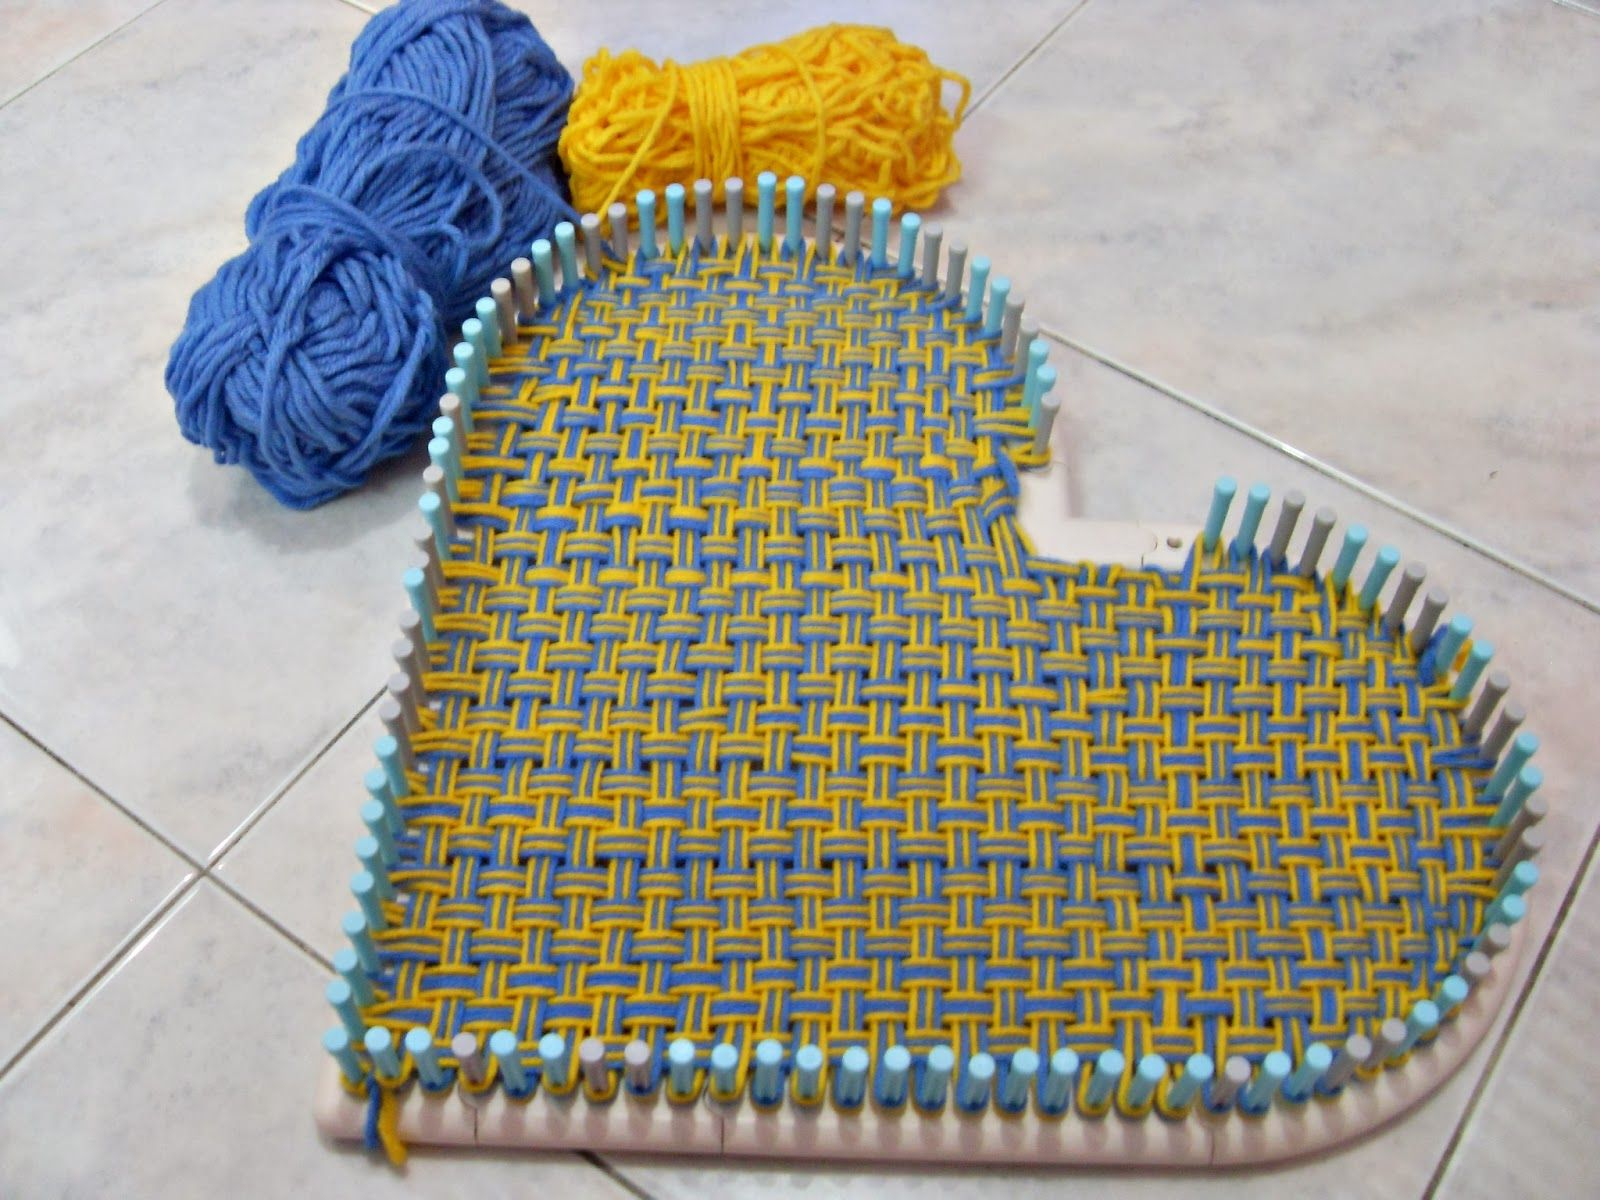 Knitting Loom Uses : Crochet is fun weaving a heart using martha stewart loom